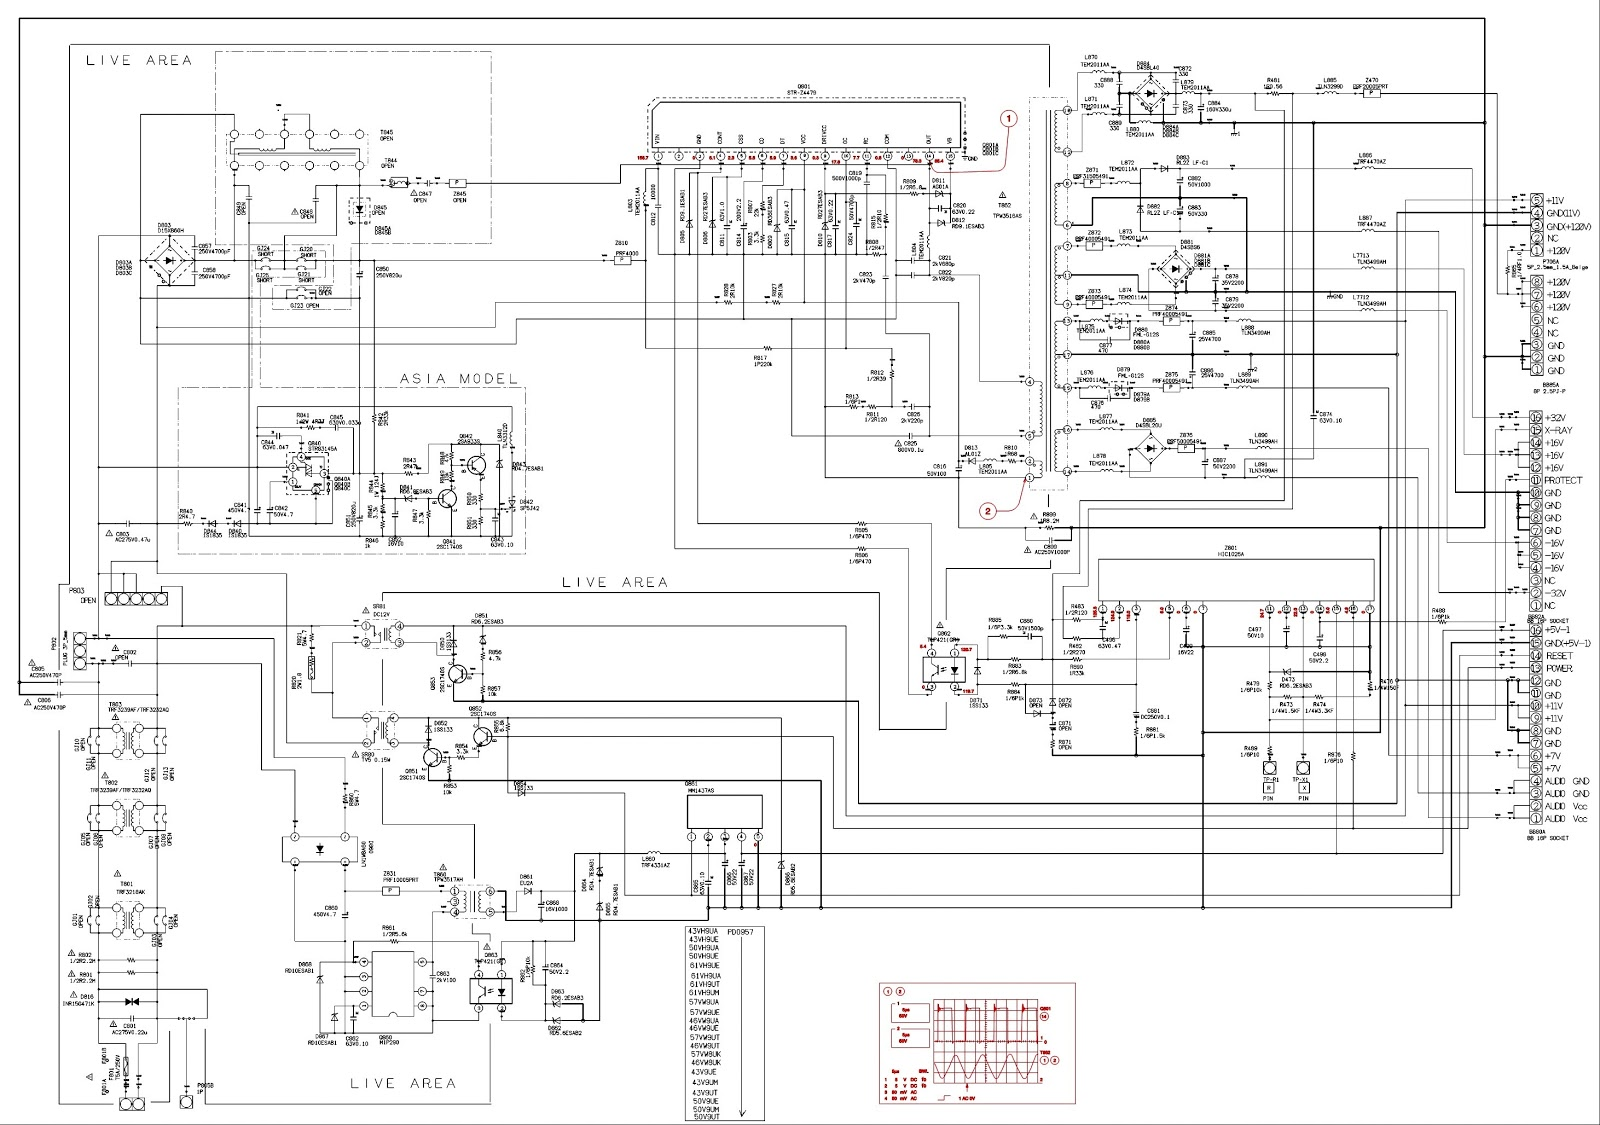 toshiba tv schematic diagrams - wiring diagram labeled diagram of a firefly circuit board labeled diagram of a toshiba tv